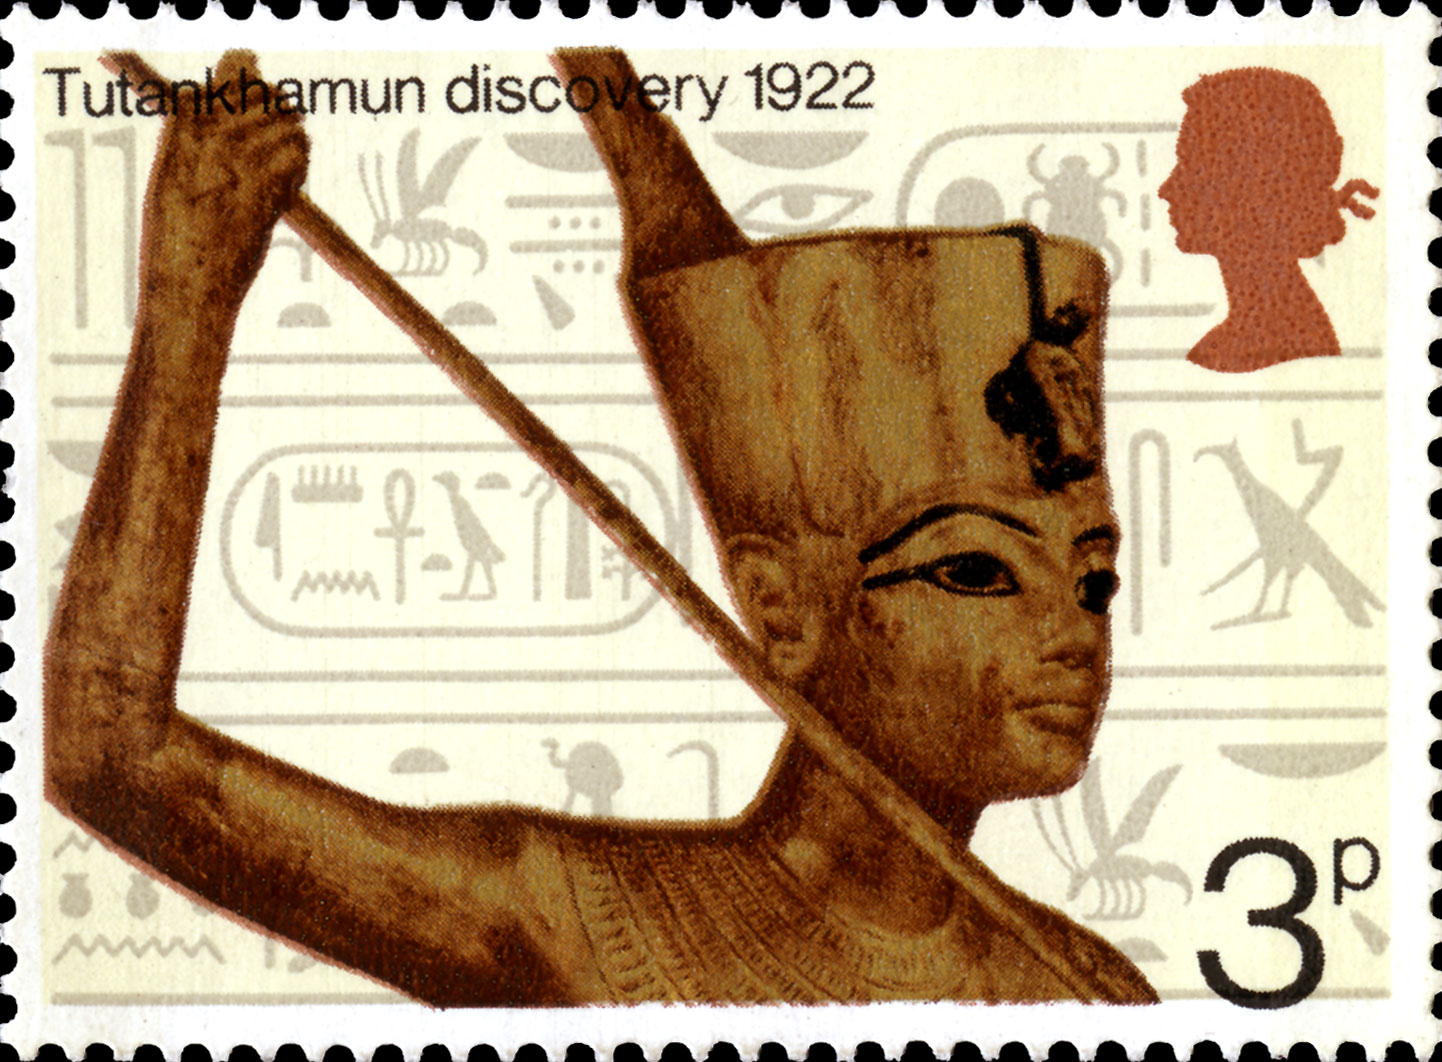 Stamp depicting a statue of Tutankhamun against a background of Hieroglyphics.